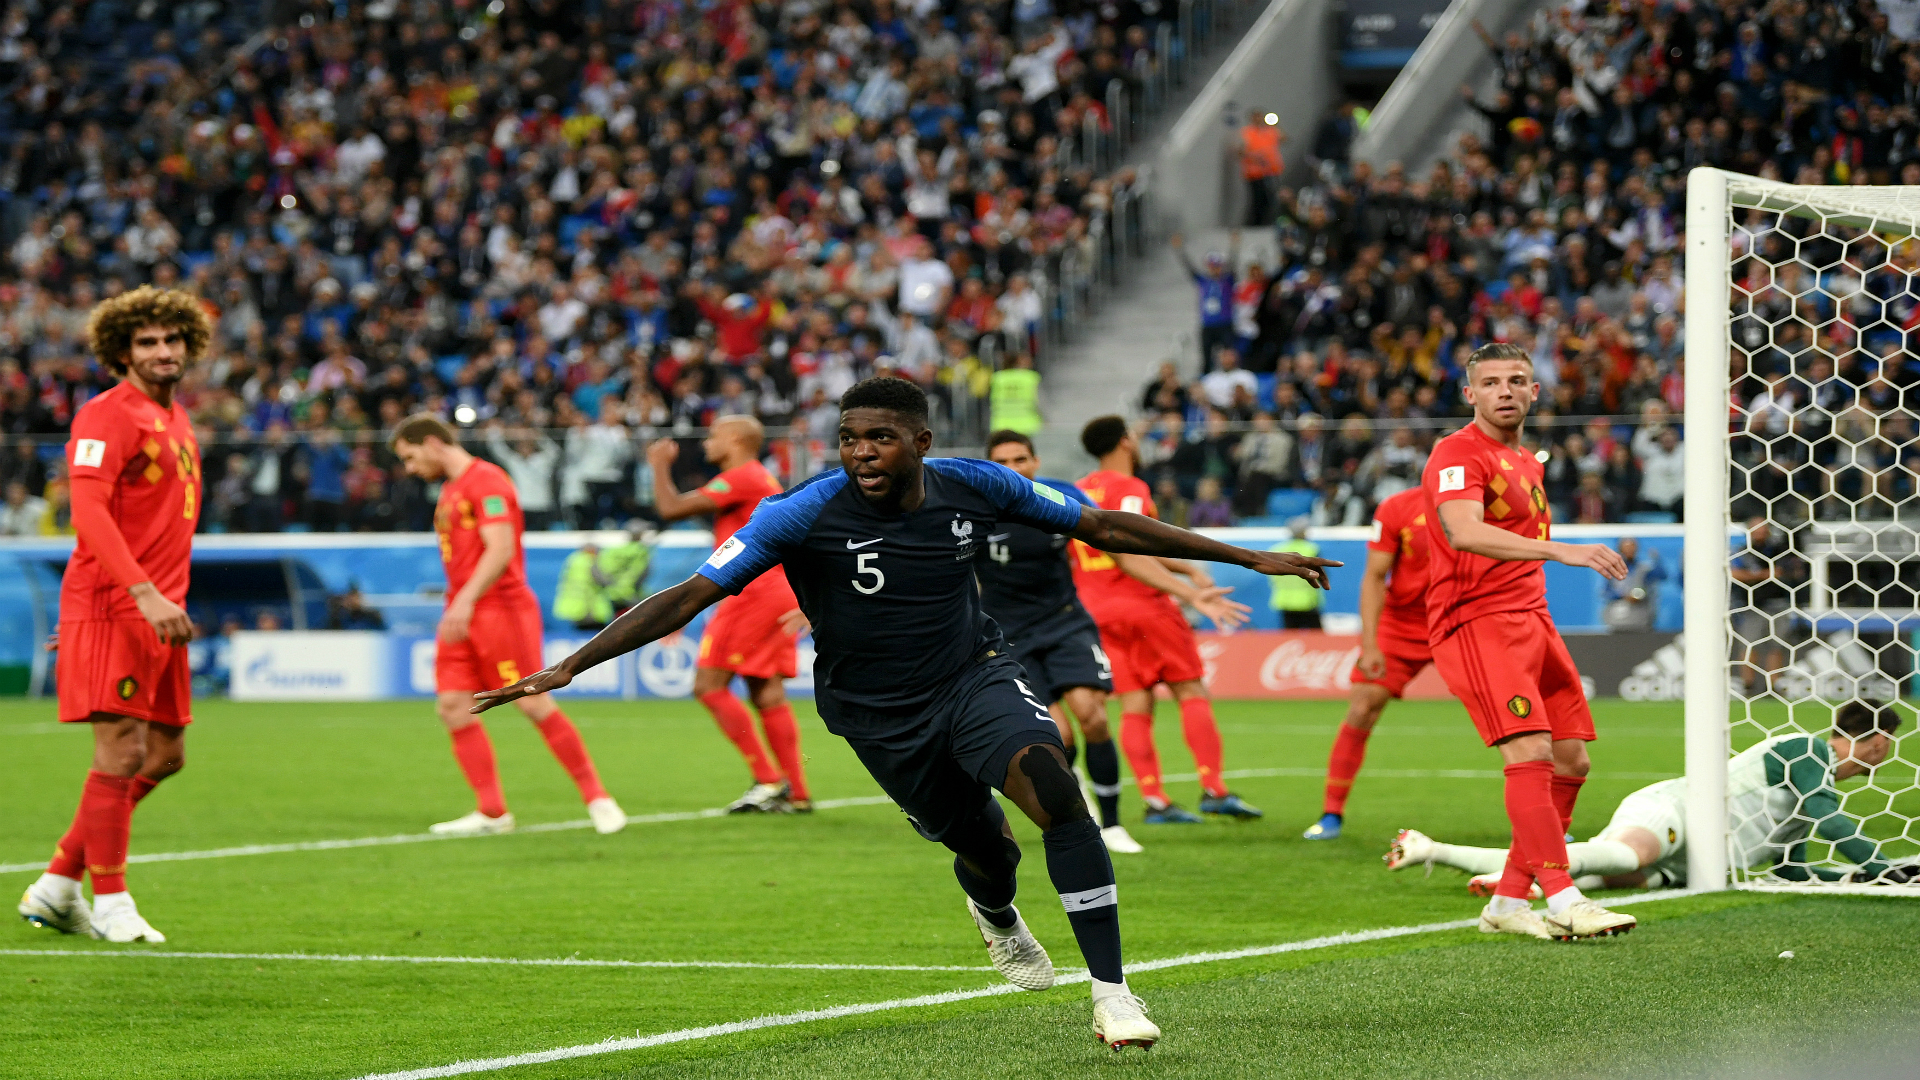 Antoine Griezmann celebrates World Cup final goal with 'disgusting' Fortnite dance